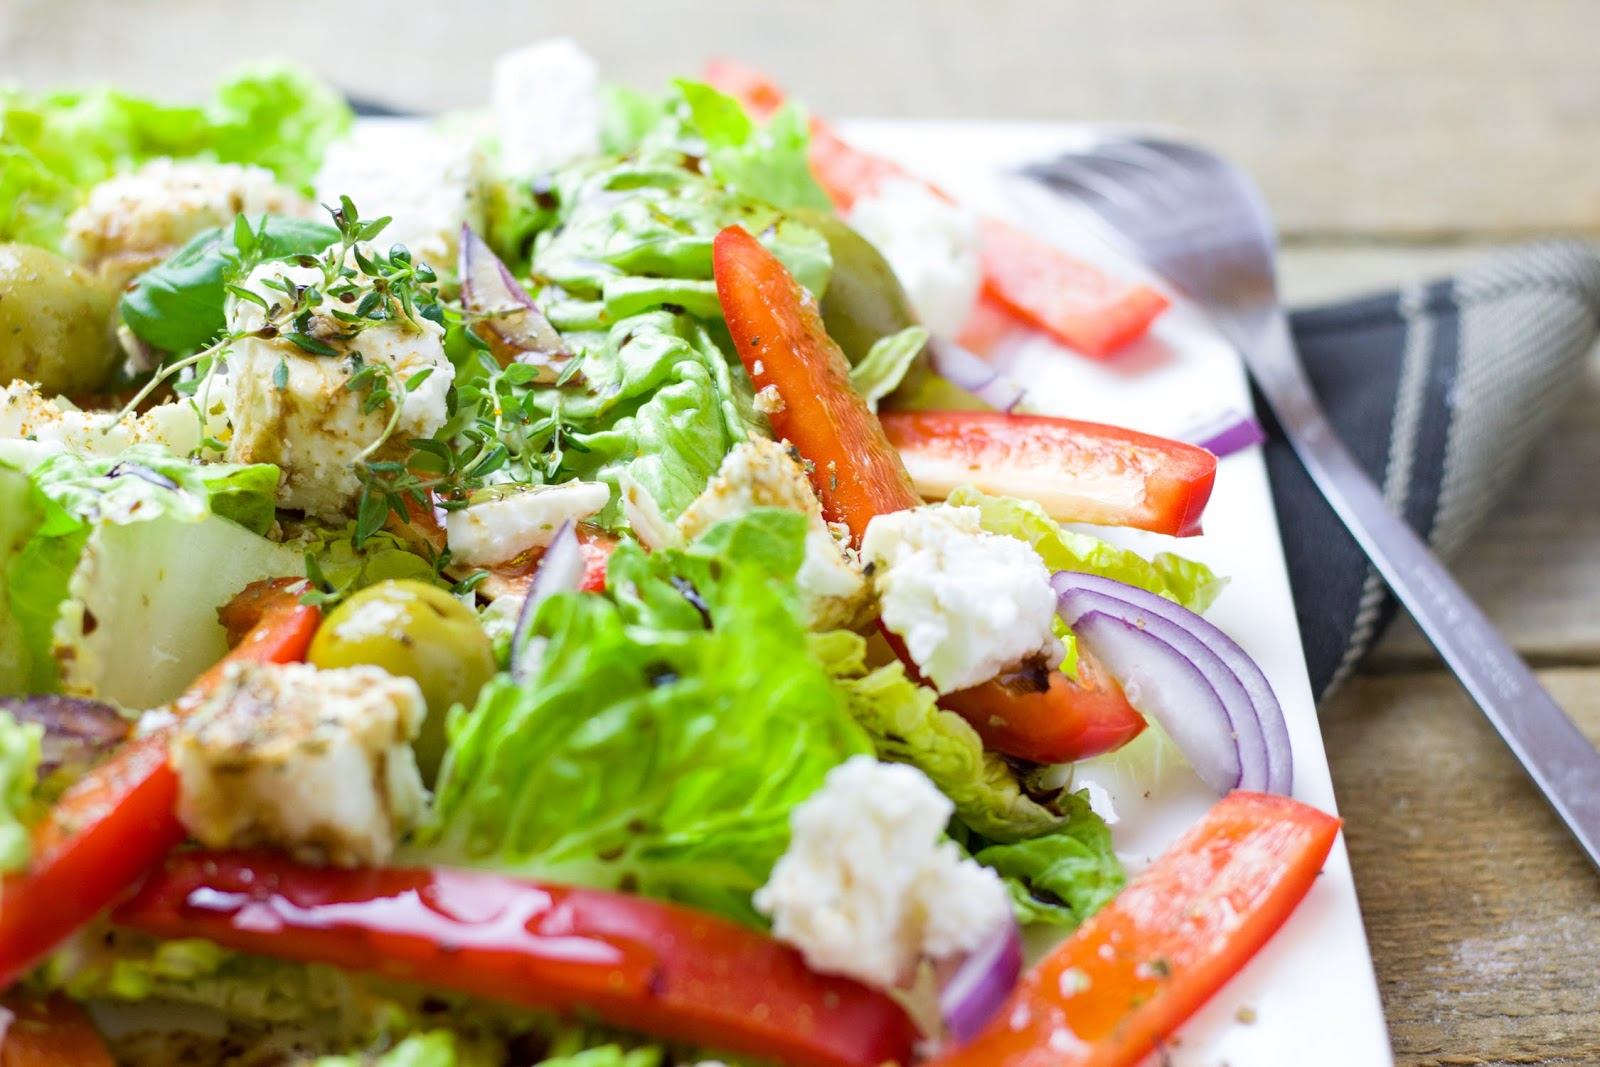 Heart-healthy meals: a leafy green salad